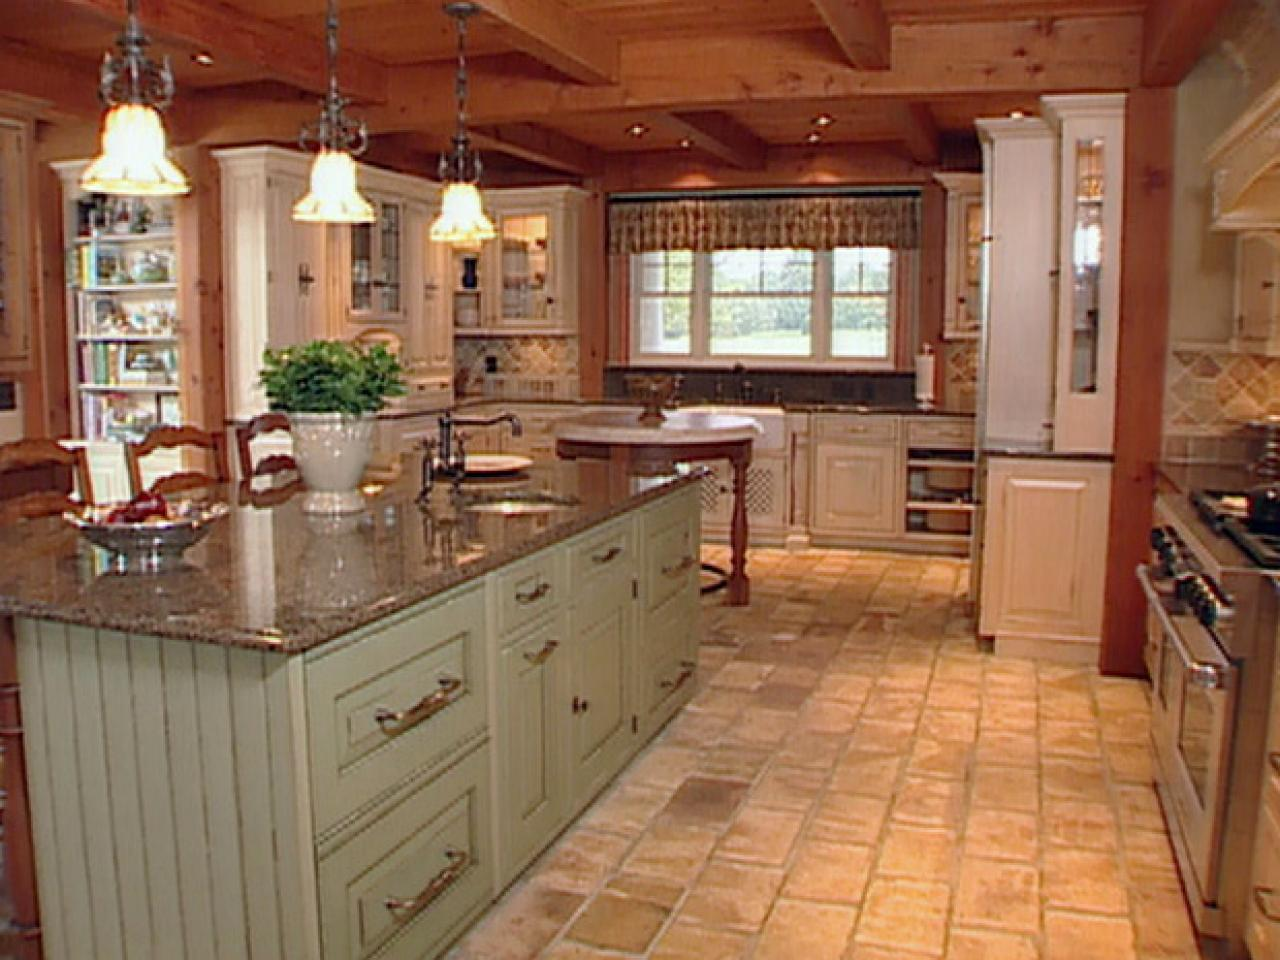 Remodeling an old farmhouse ideas joy studio design for Old home kitchen remodel